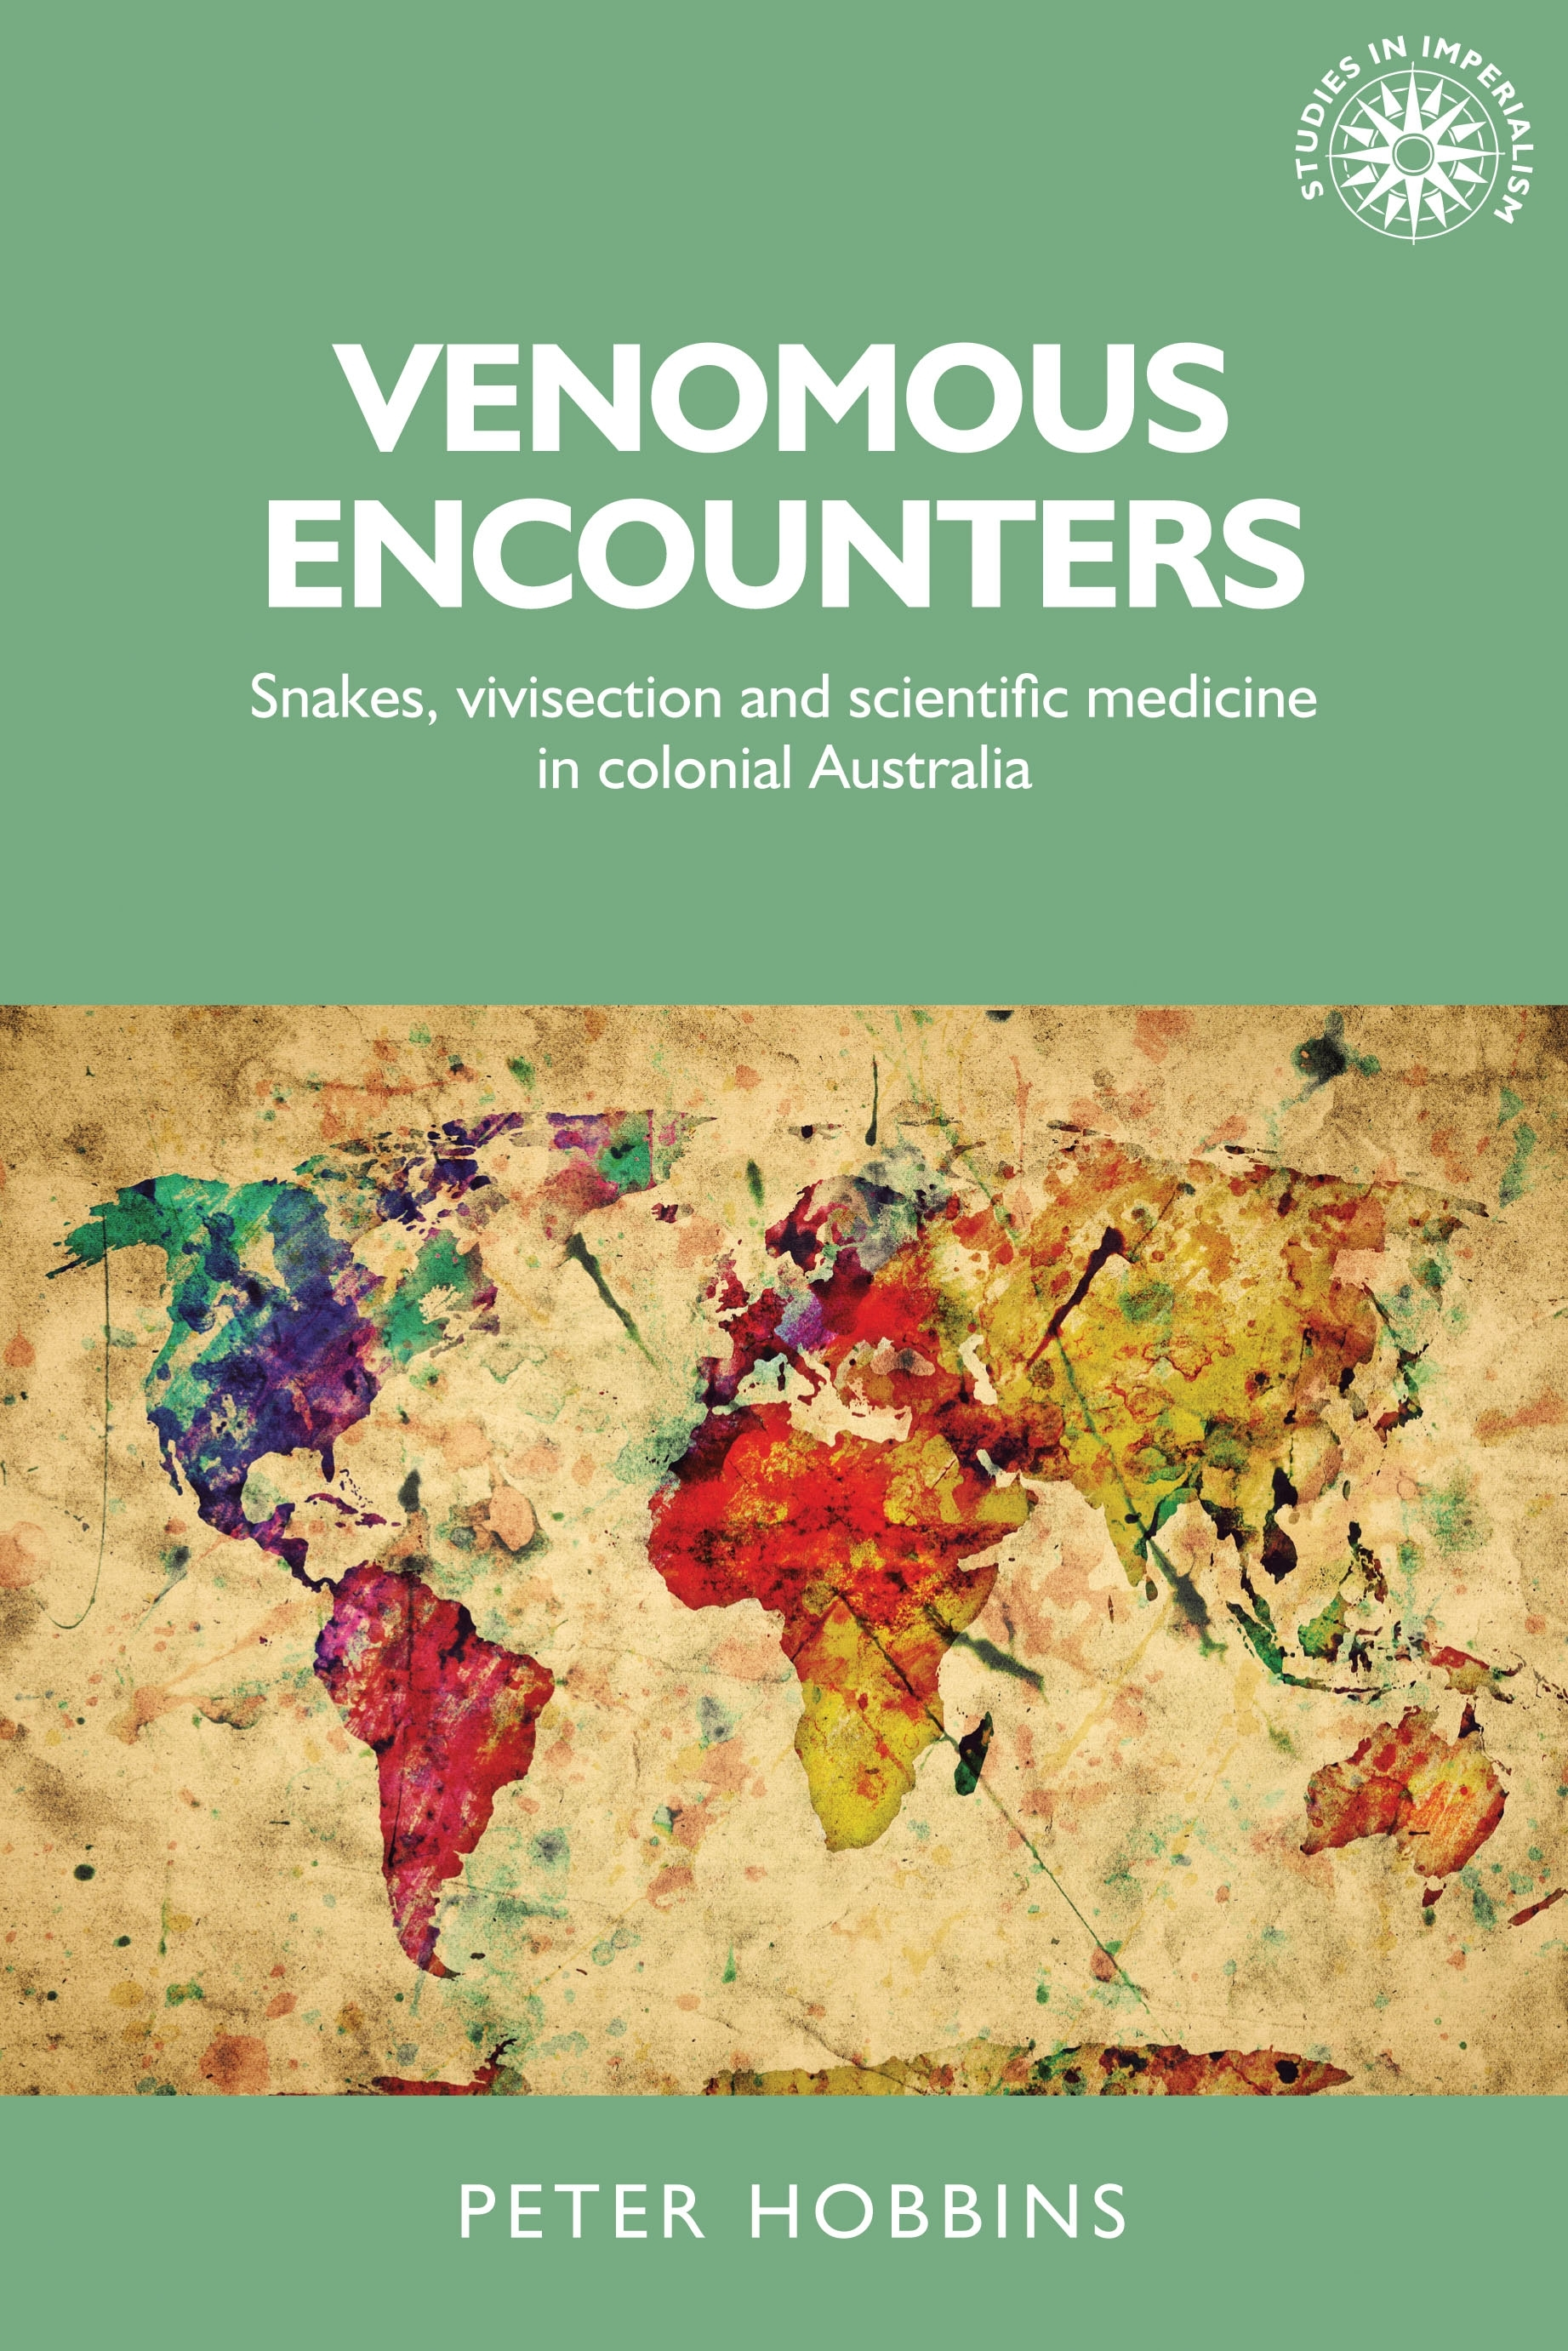 Snakebite, science and suffering